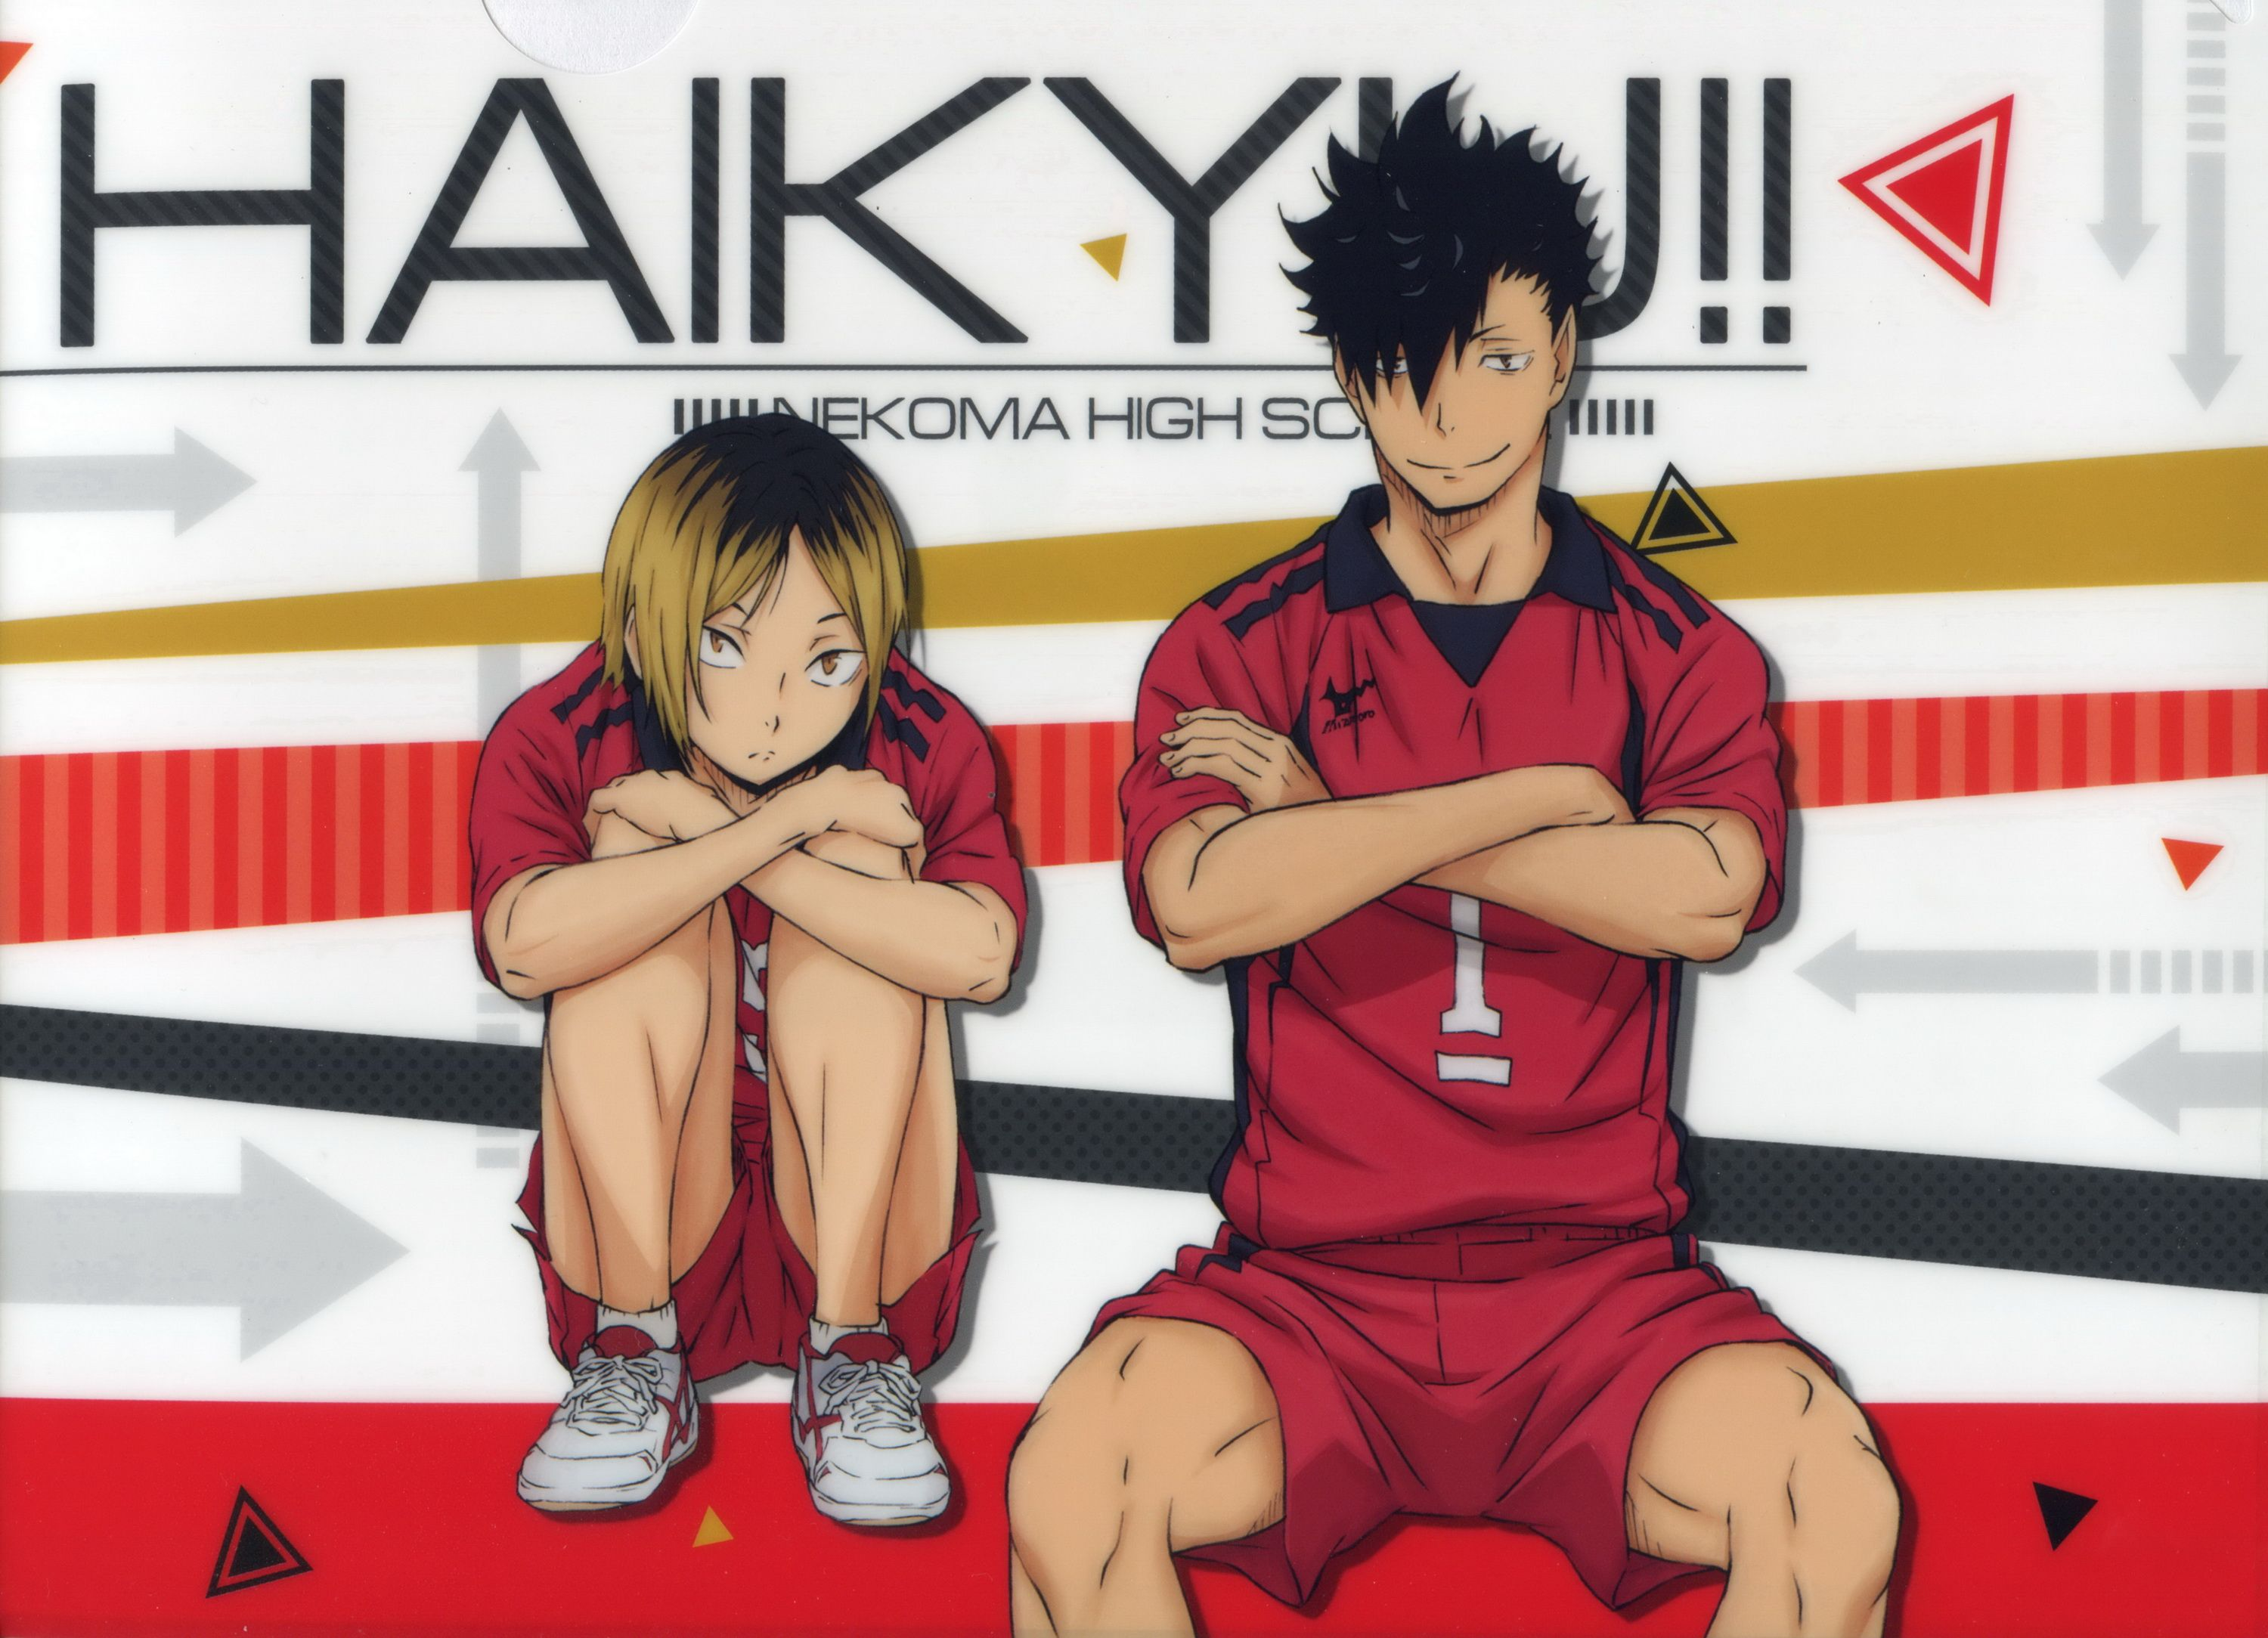 Production I.G., Haikyuu!!, Kozume Kenma, Kuroo Tetsurou, Volleyball Uniform (Nekoma High), Nekoma High